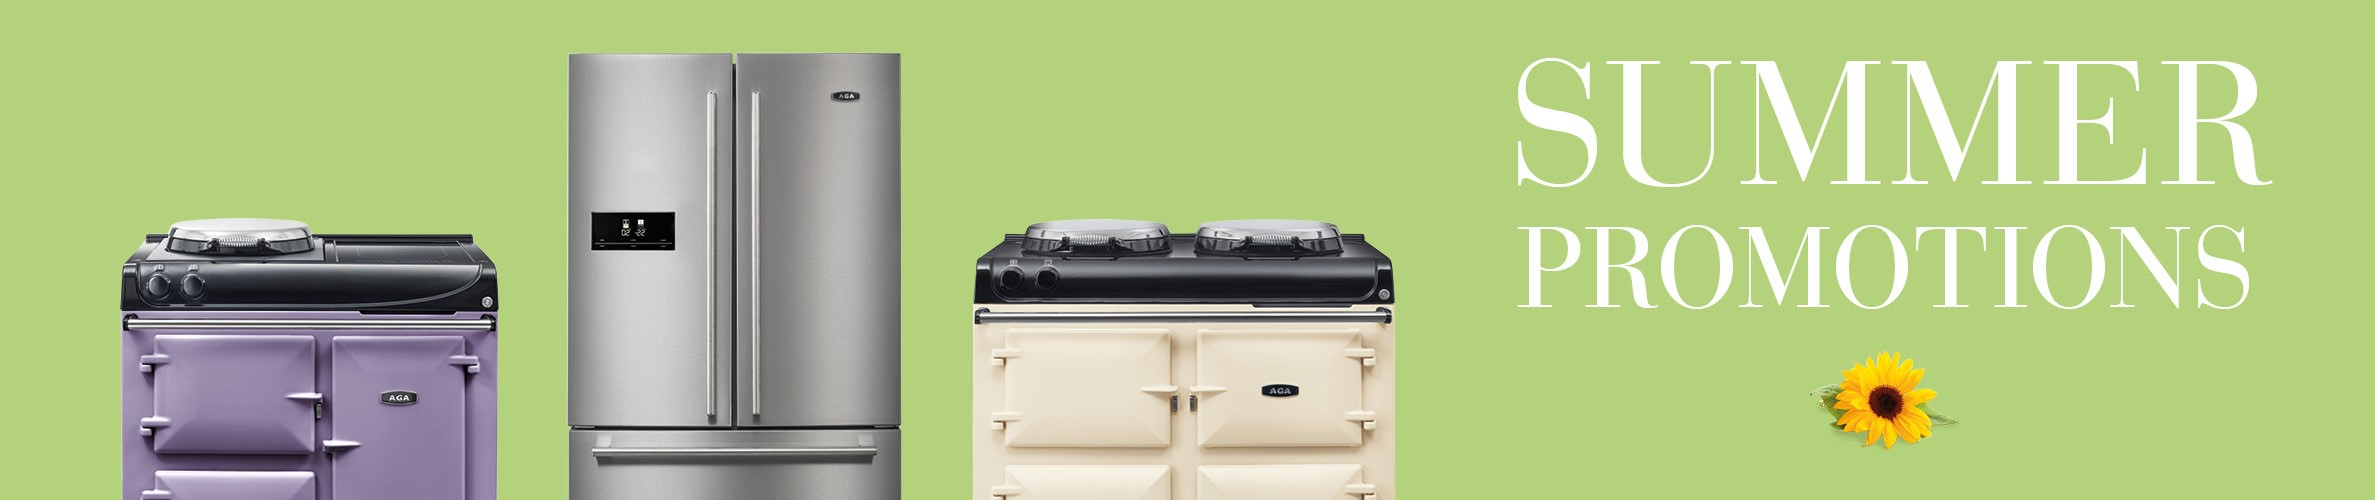 AGA Summer Promotions